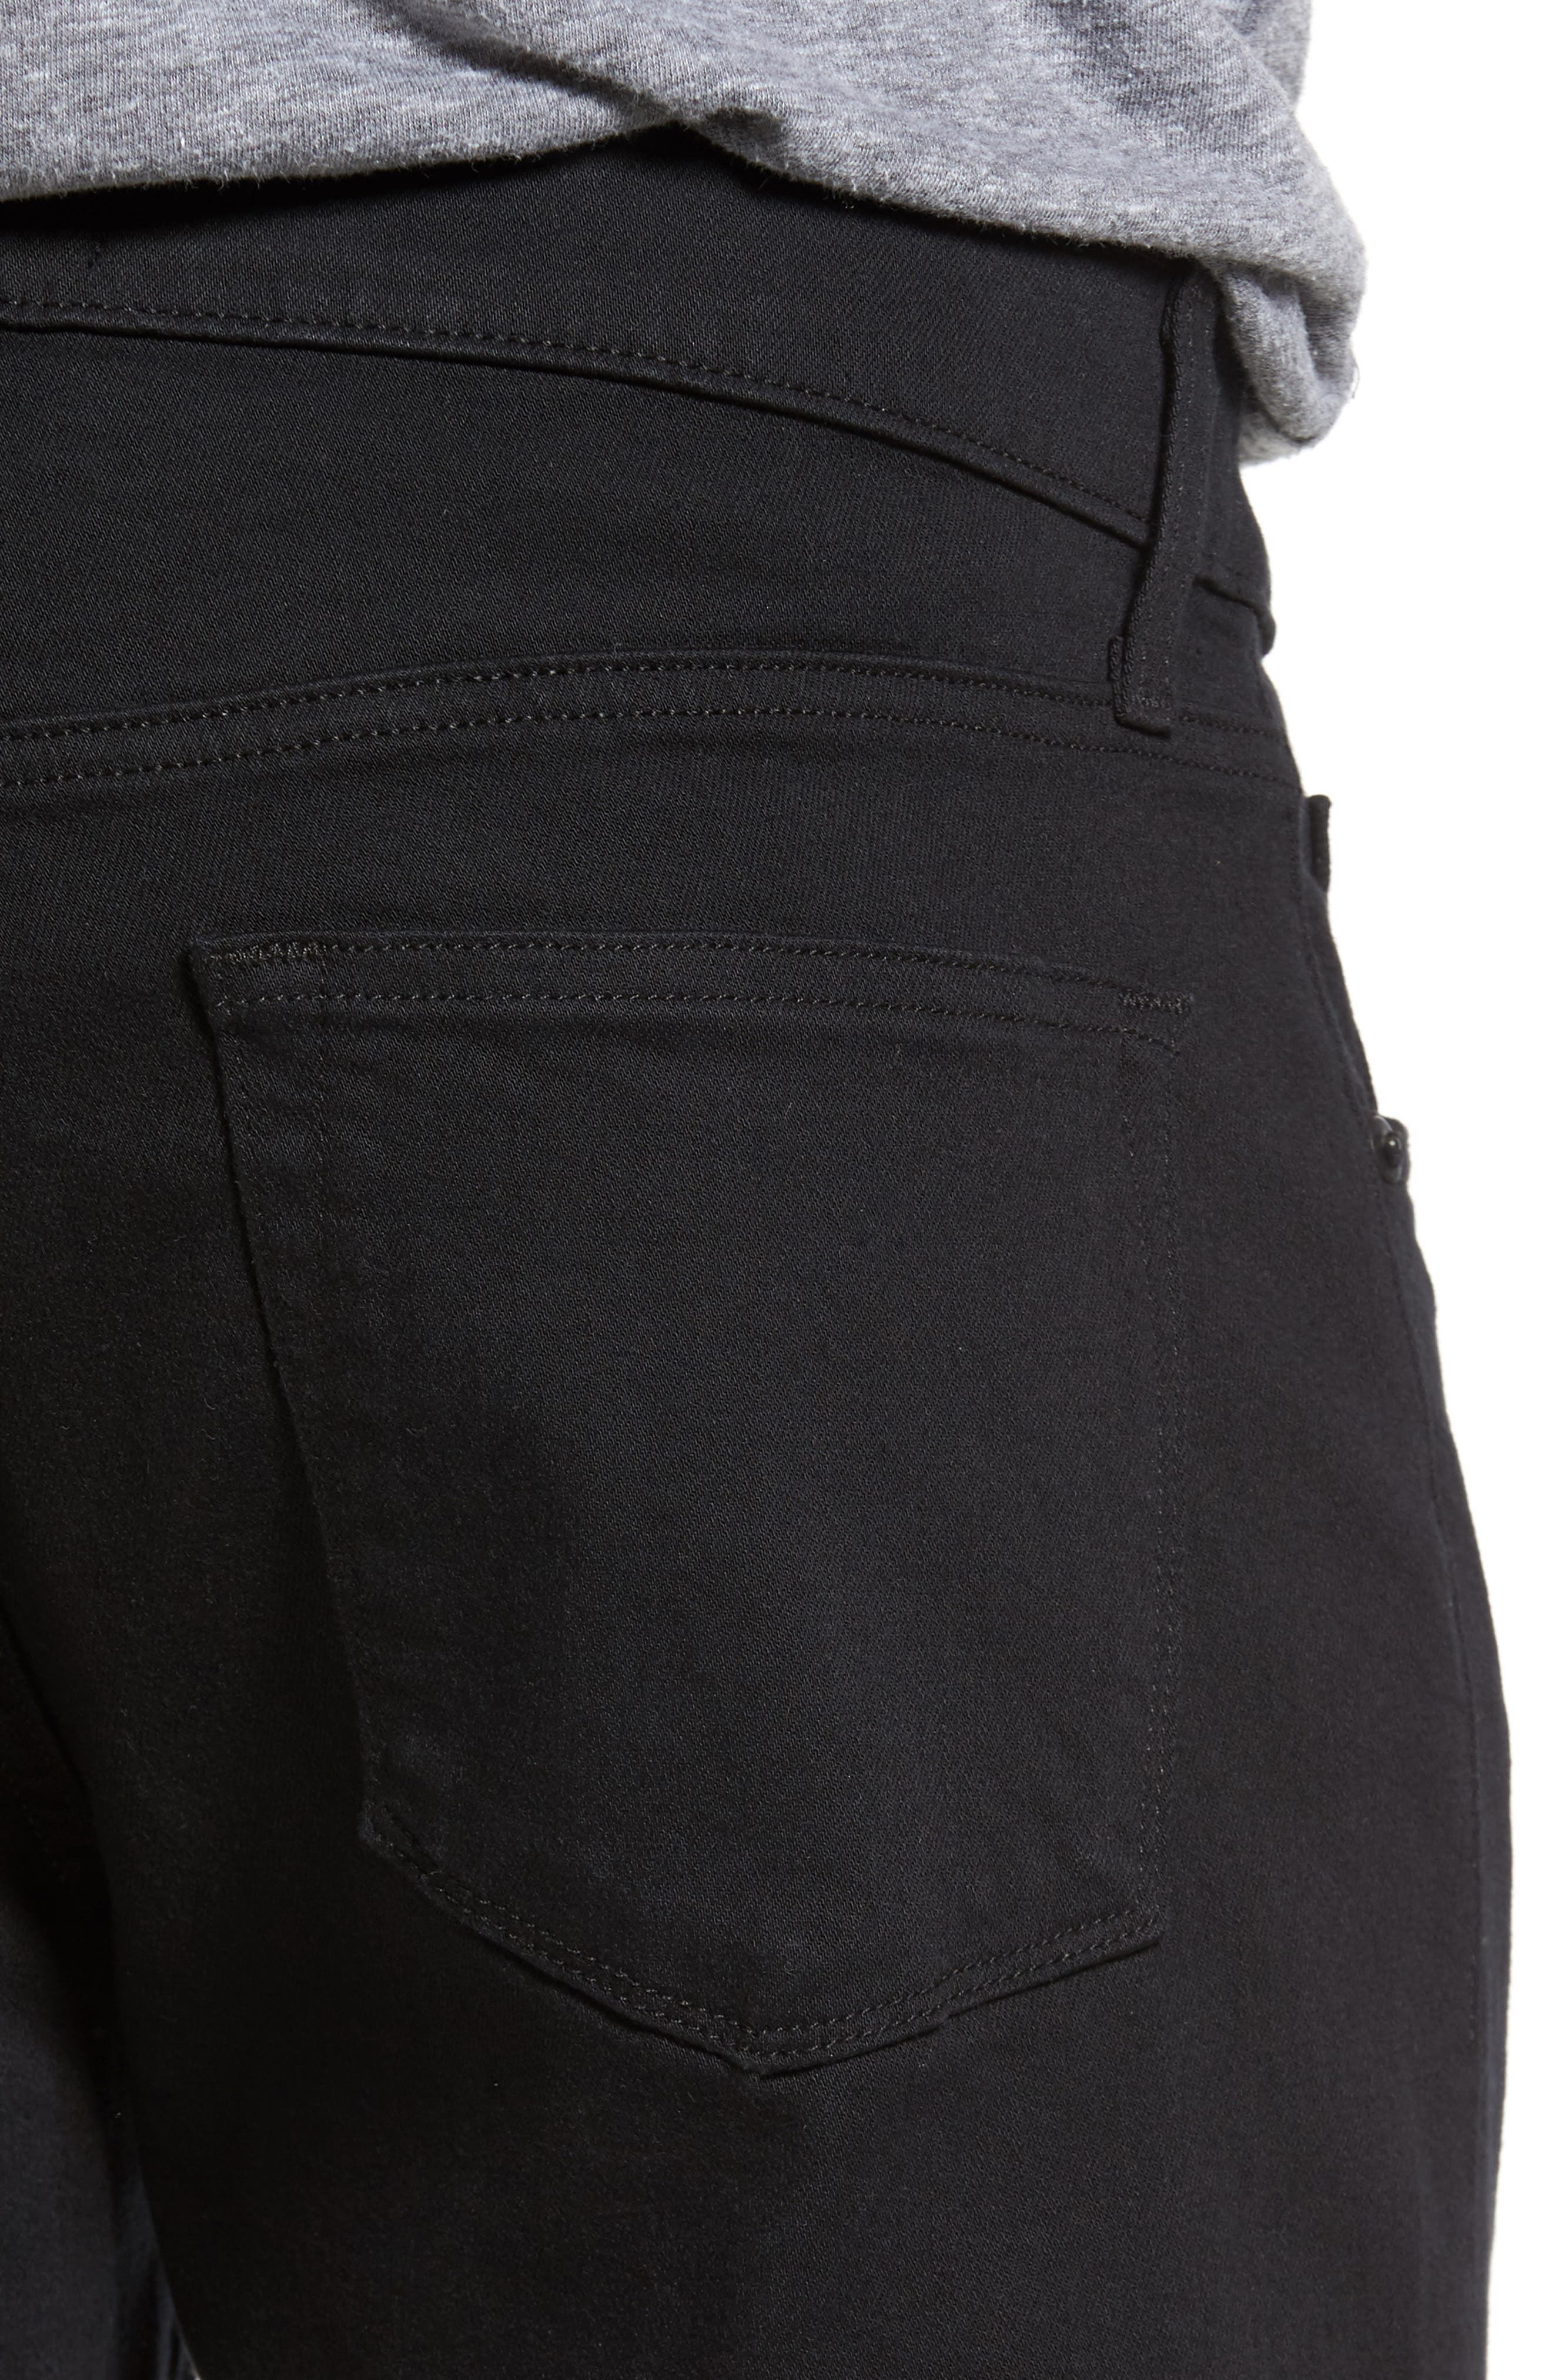 Tyler Slim Fit Jeans,                             Alternate thumbnail 4, color,                             SERIOUSLY BLACK